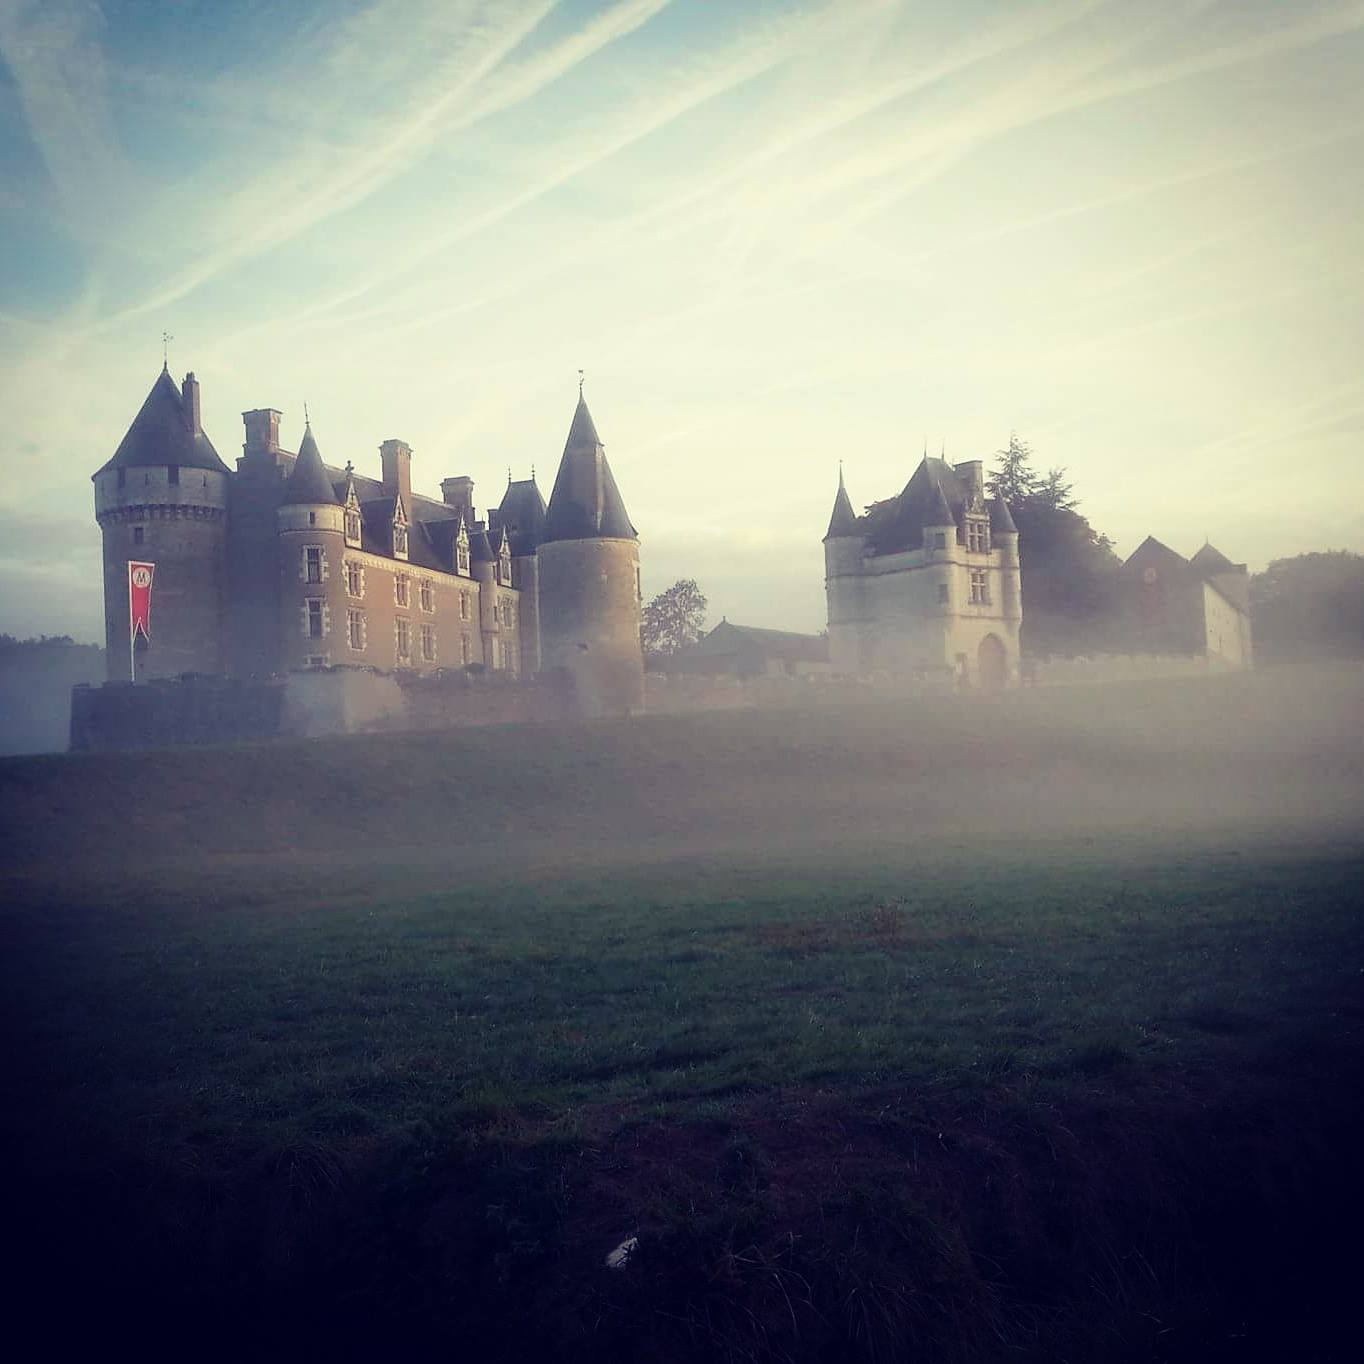 143-montpoupon-chateau-brume.jpg